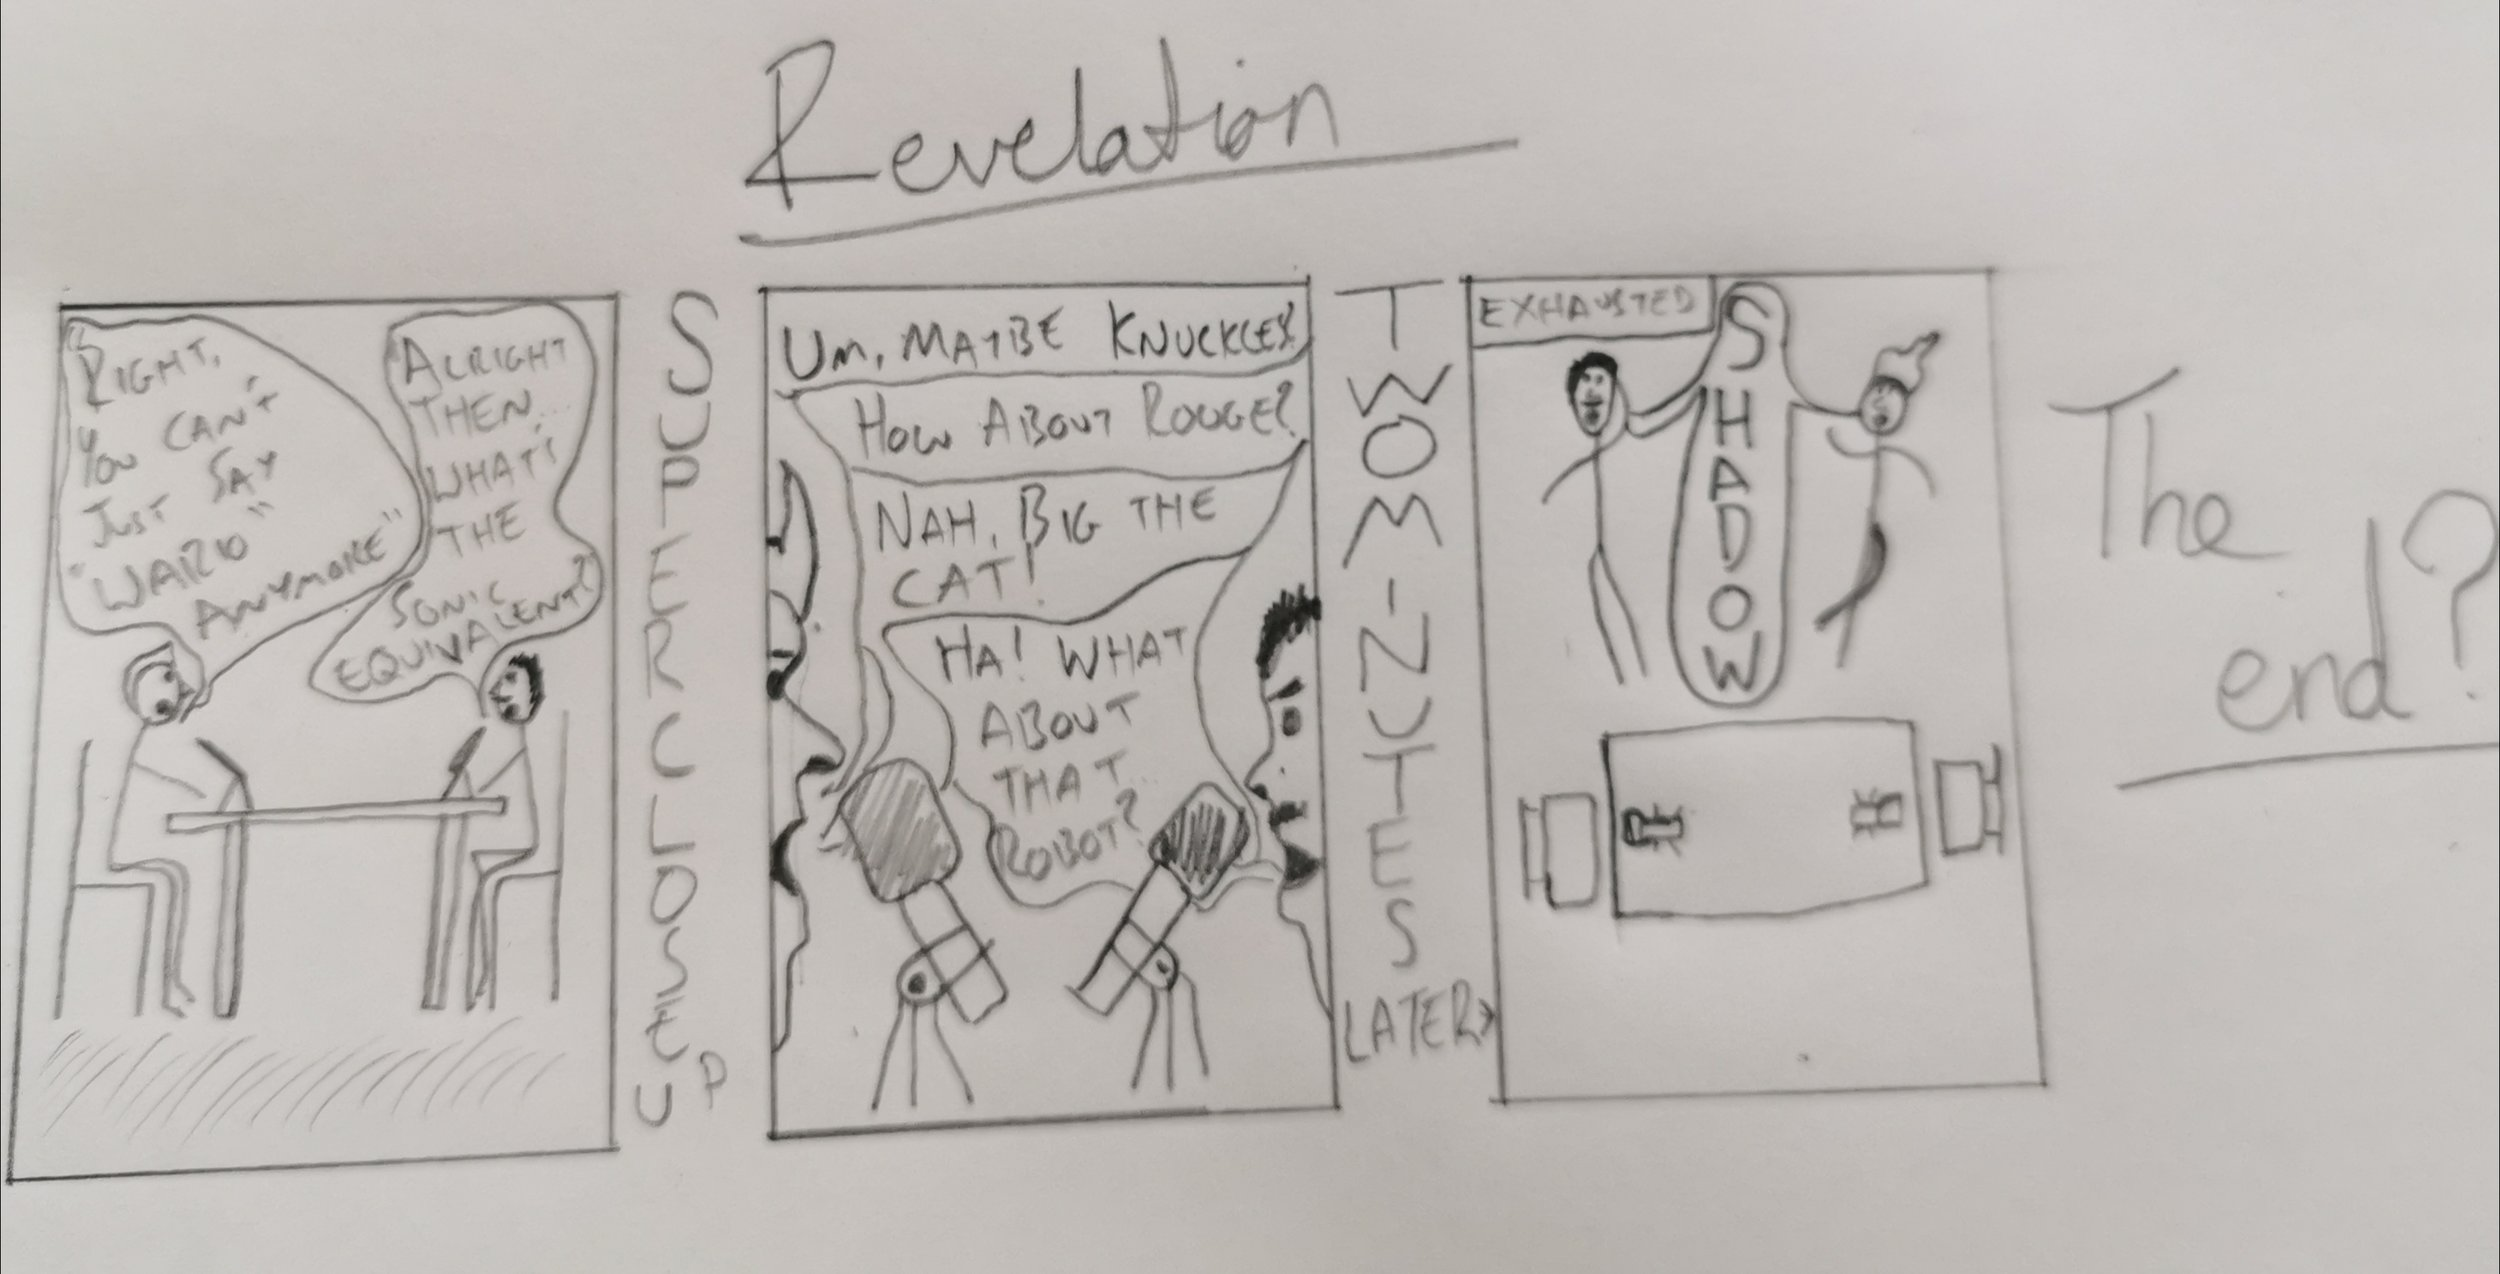 As a 'Special Treat' please enjoy this comic, drawn by Scott, of a moment we shared in the recording of our latest bonus podcast…